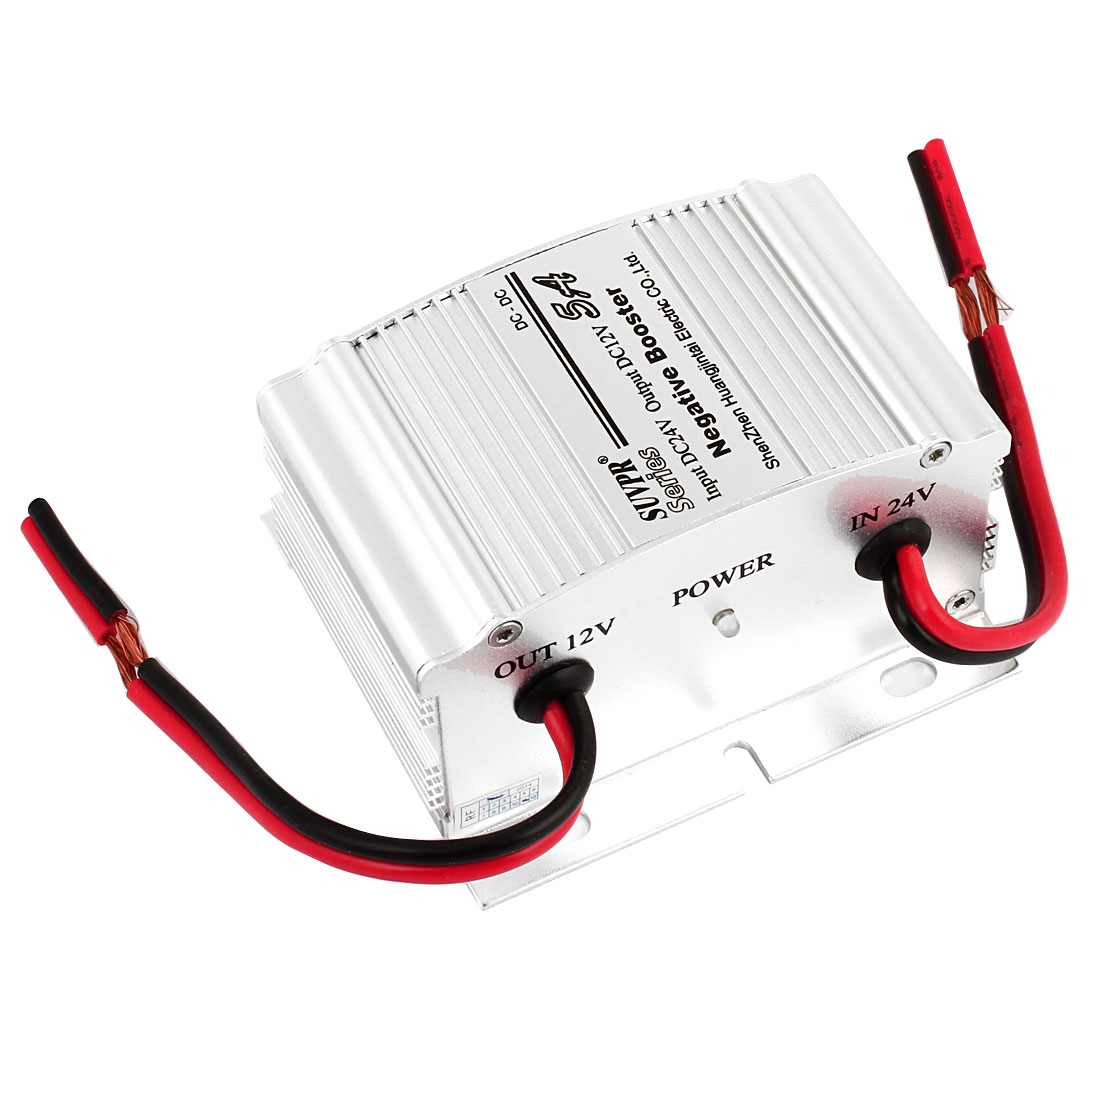 Car Auto Vehicle Power Supply Inverter DC 24V to DC 12V 5A Silver Tone